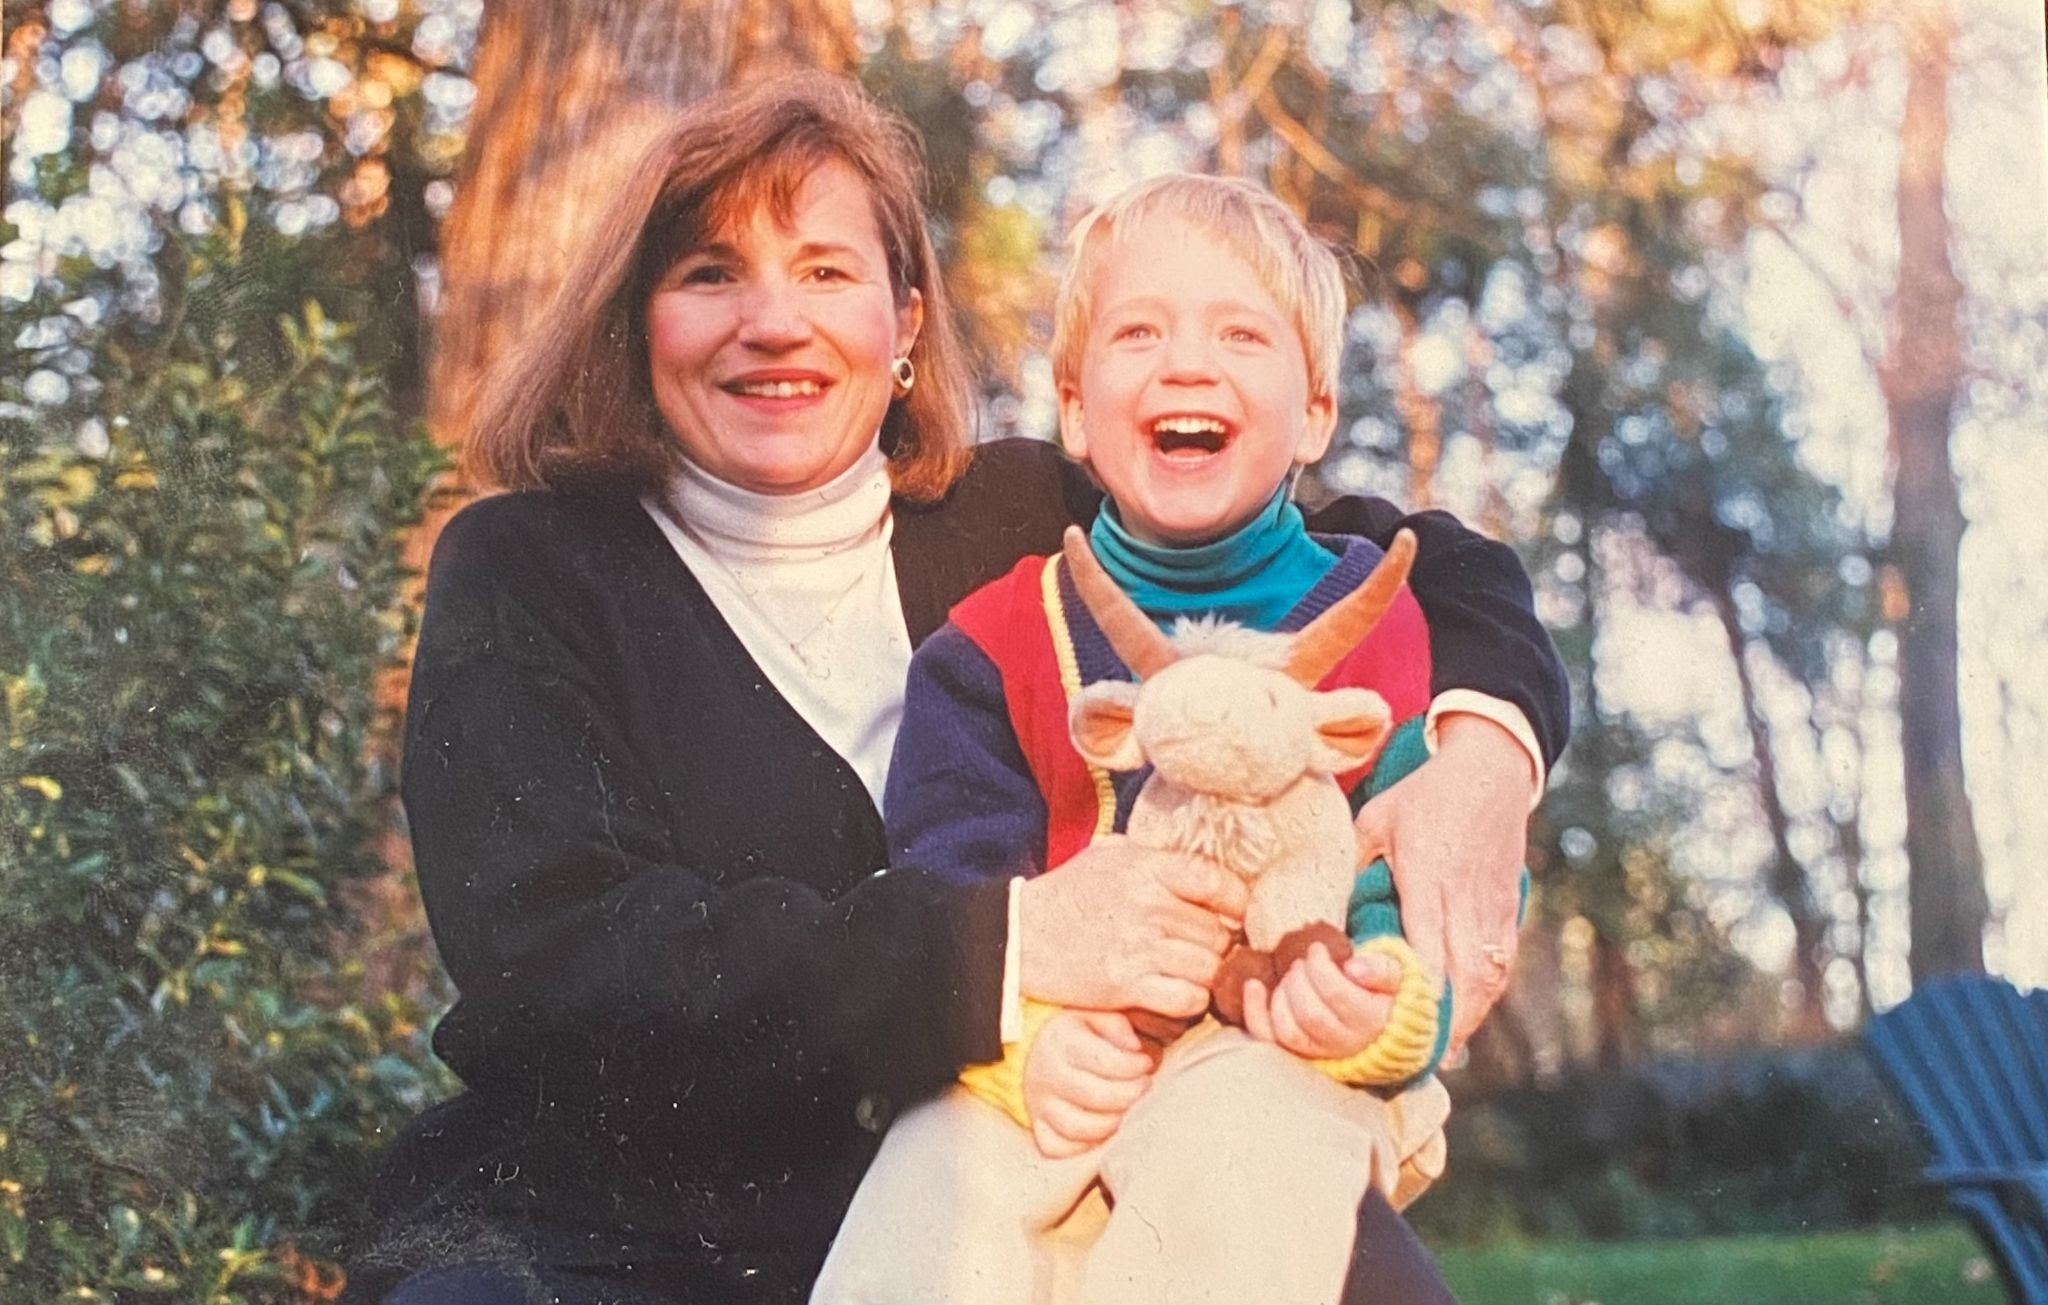 Little kid Spencer sitting on his mom's lap, facing camera with a big smile on his face